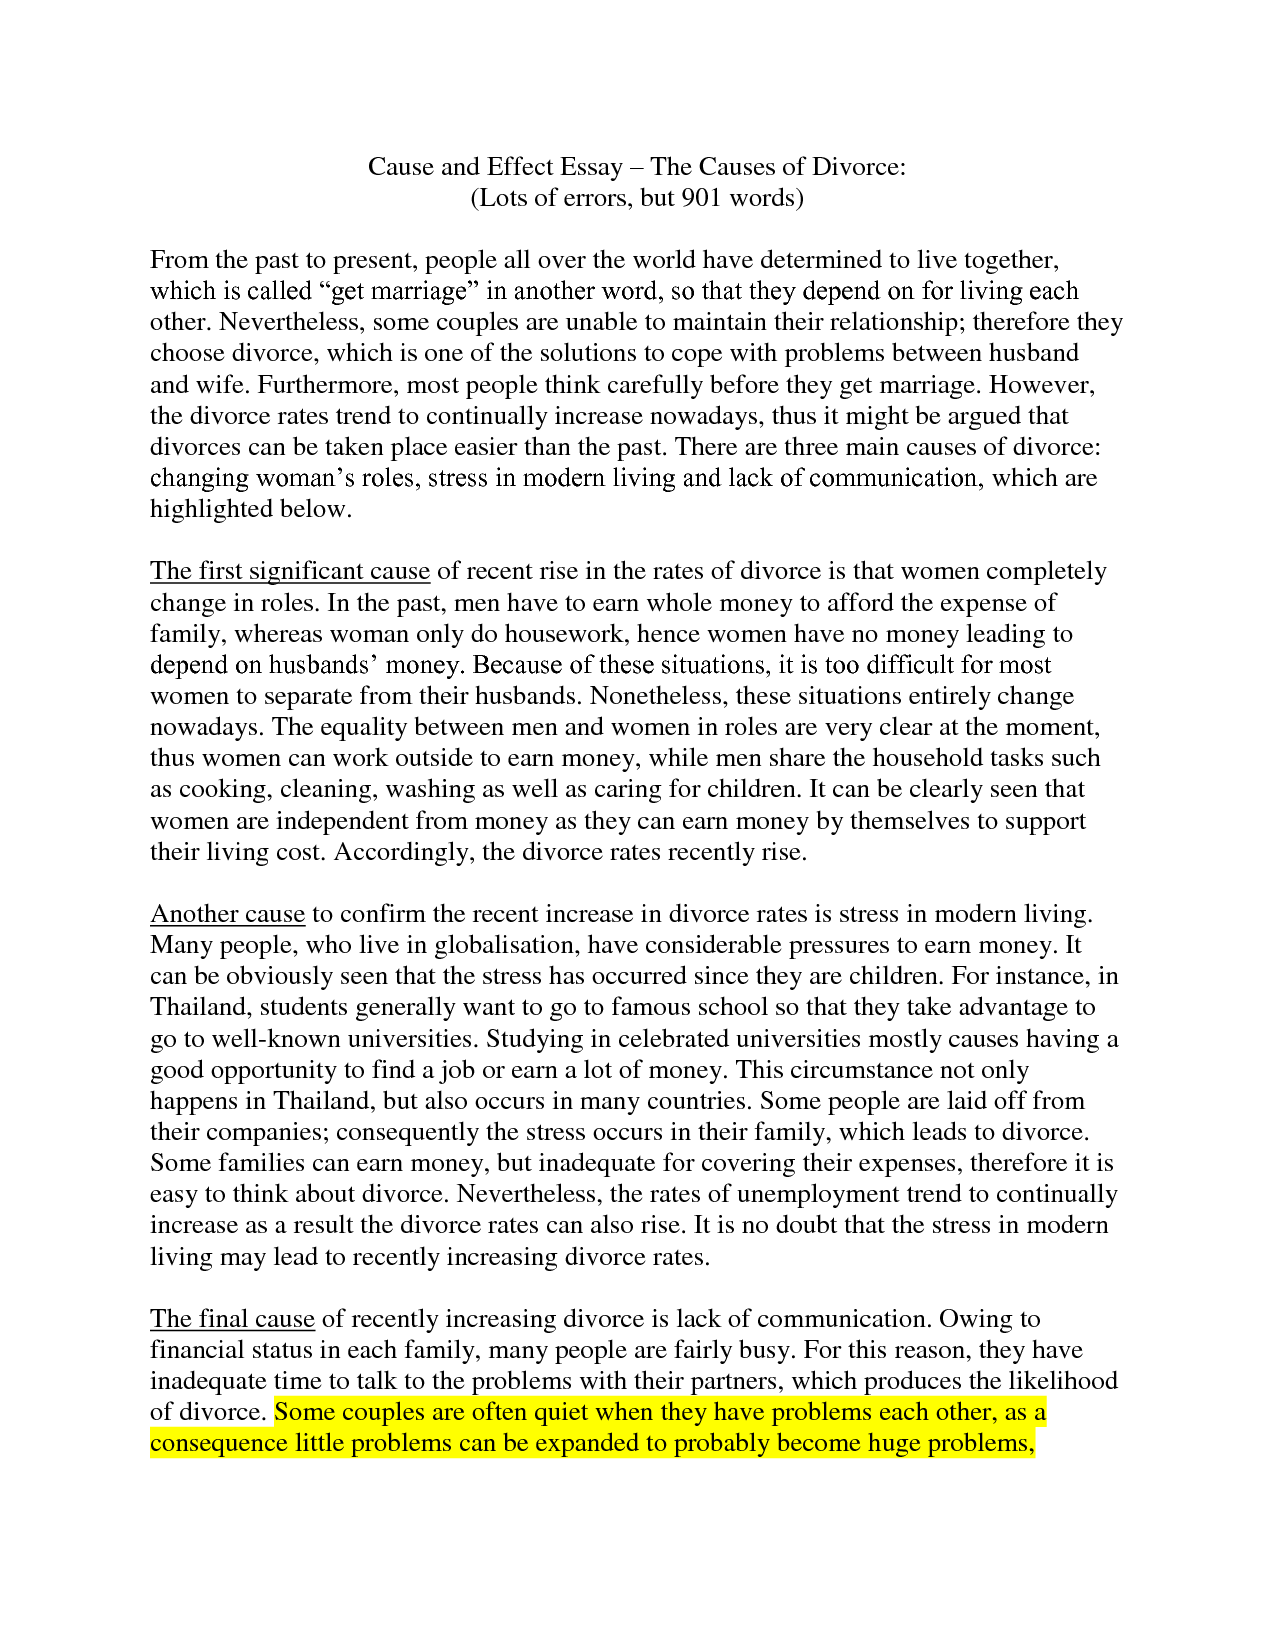 008 How To Start Cause And Effect Essay Brilliant Ideas Of Write Ethics Fabulous The Causes Effectsg Awful A Examples Step By Powerpoint Pdf Full